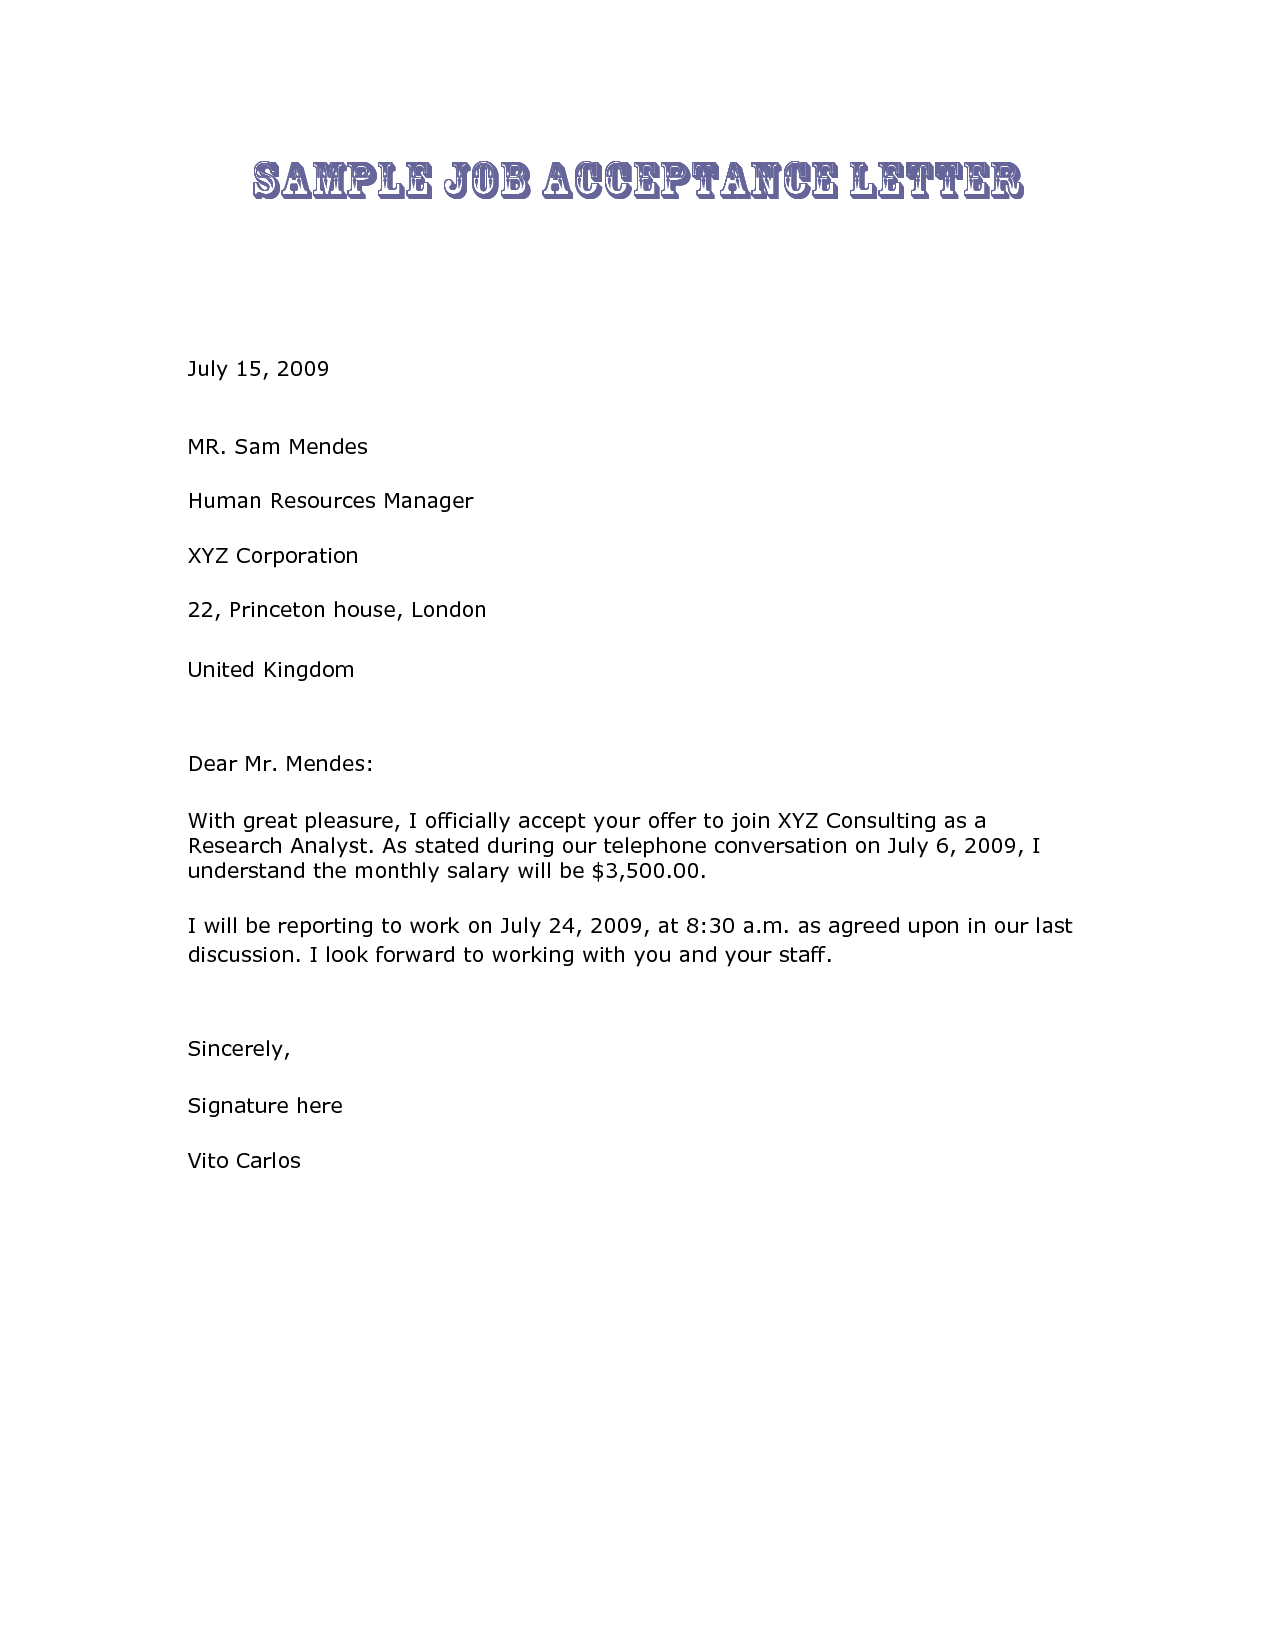 Sample Email To Send Resume Cancellation Letter Sample Email Send Resume And Cover Bsnl